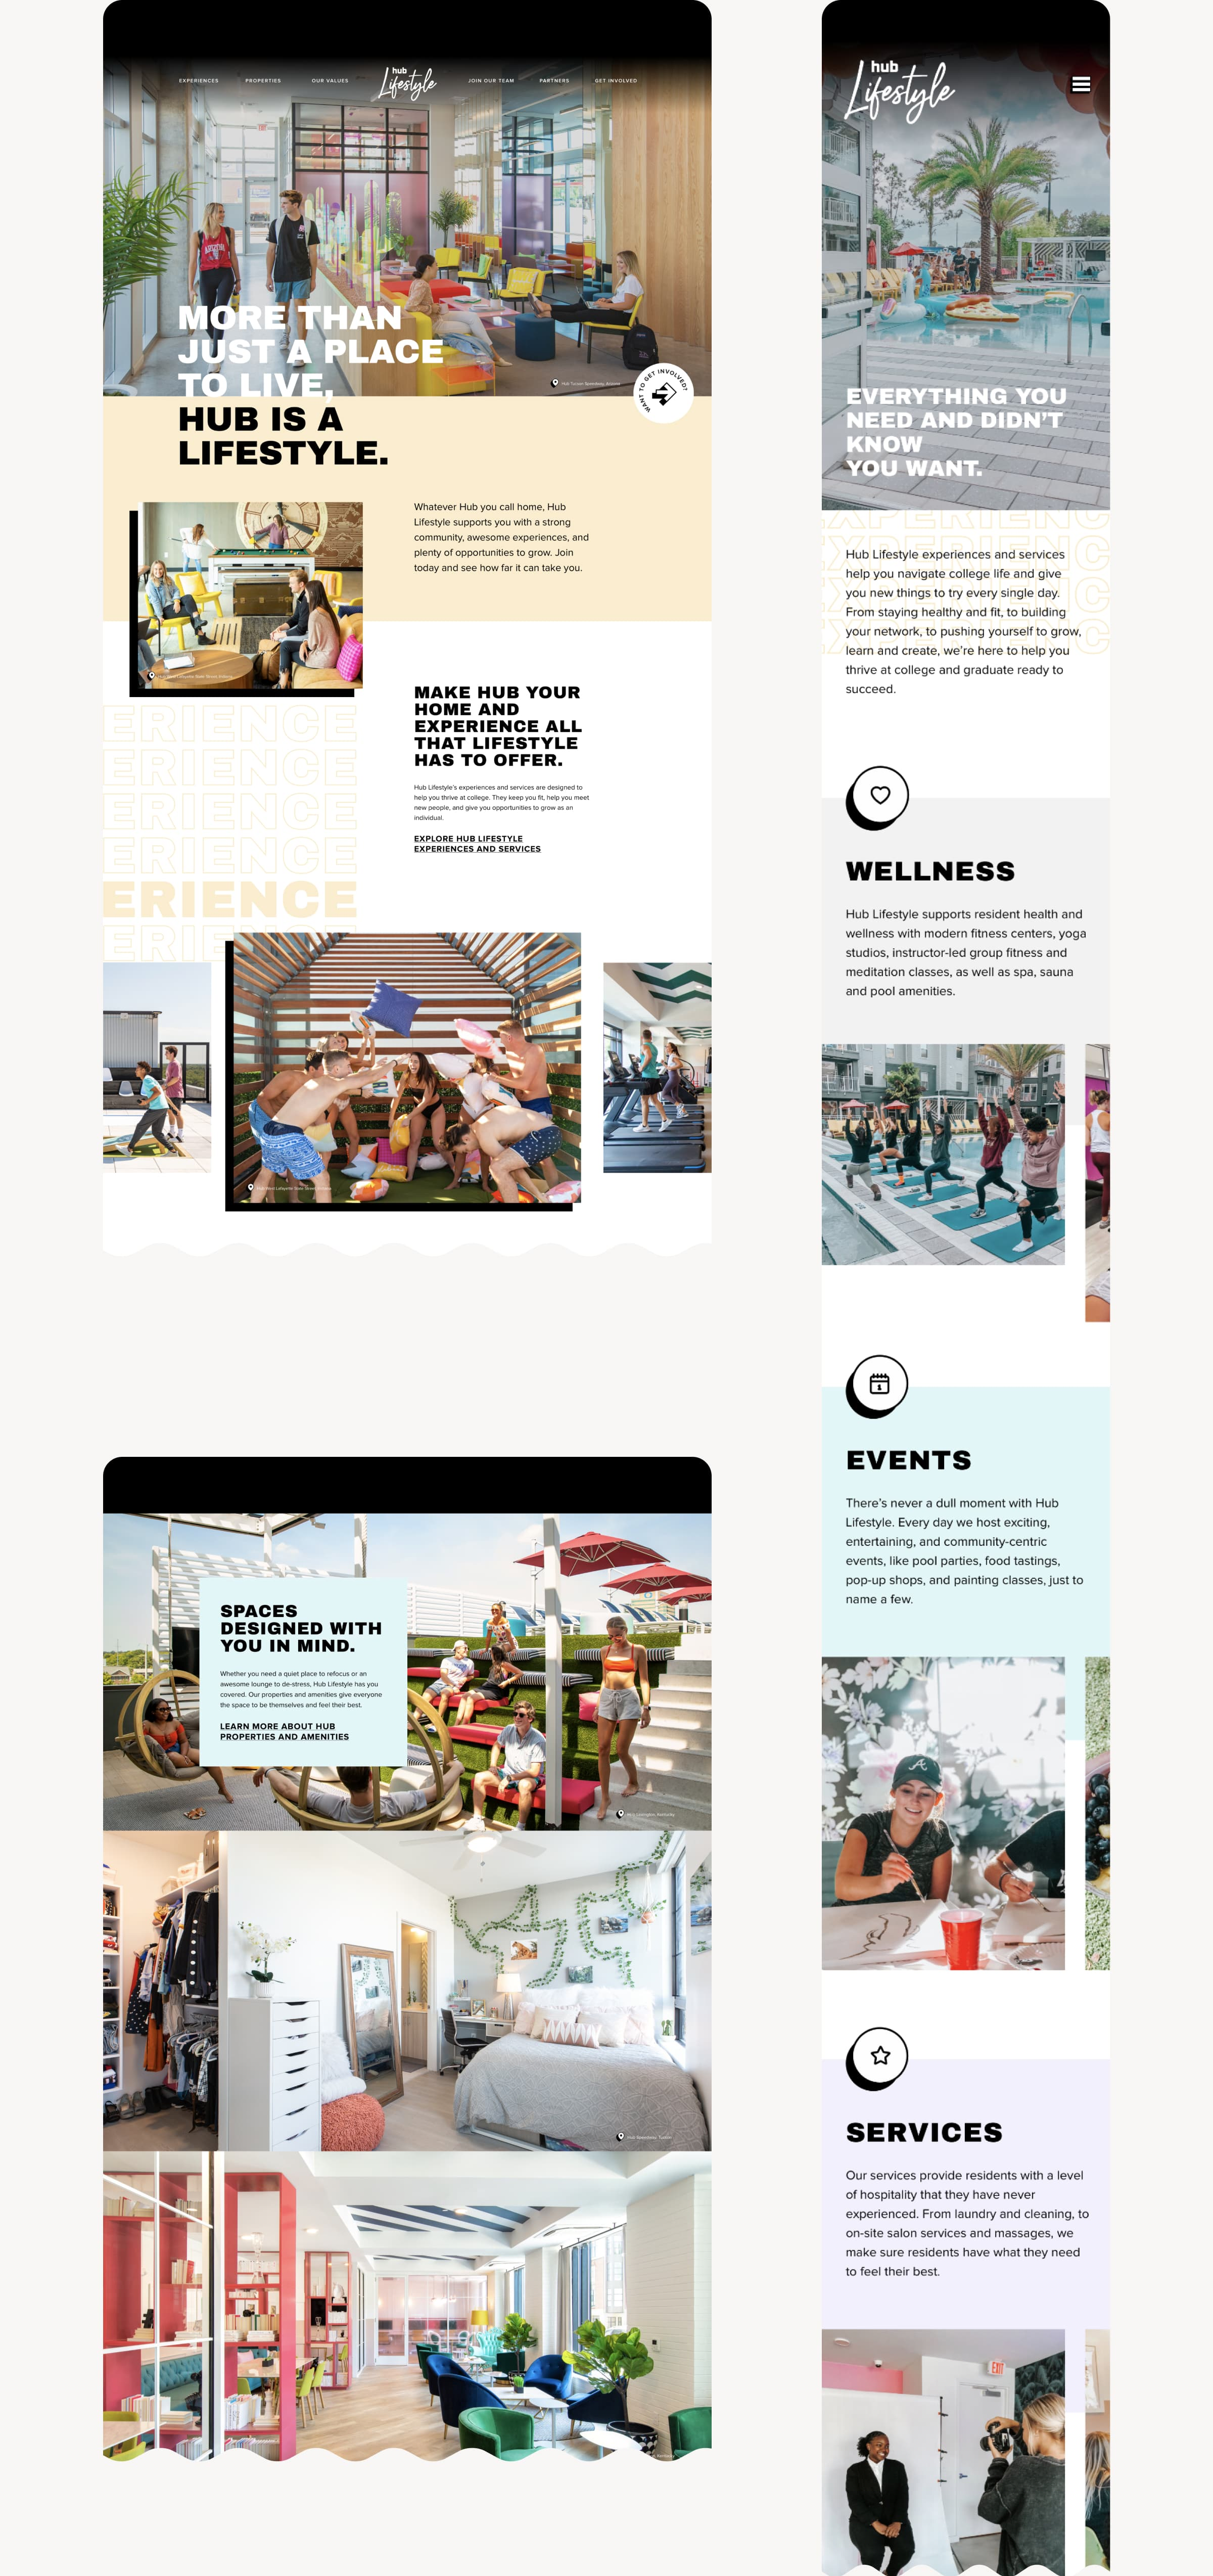 Fullscreen images of the new Hub Lifestyle website, including desktop and mobile designs.